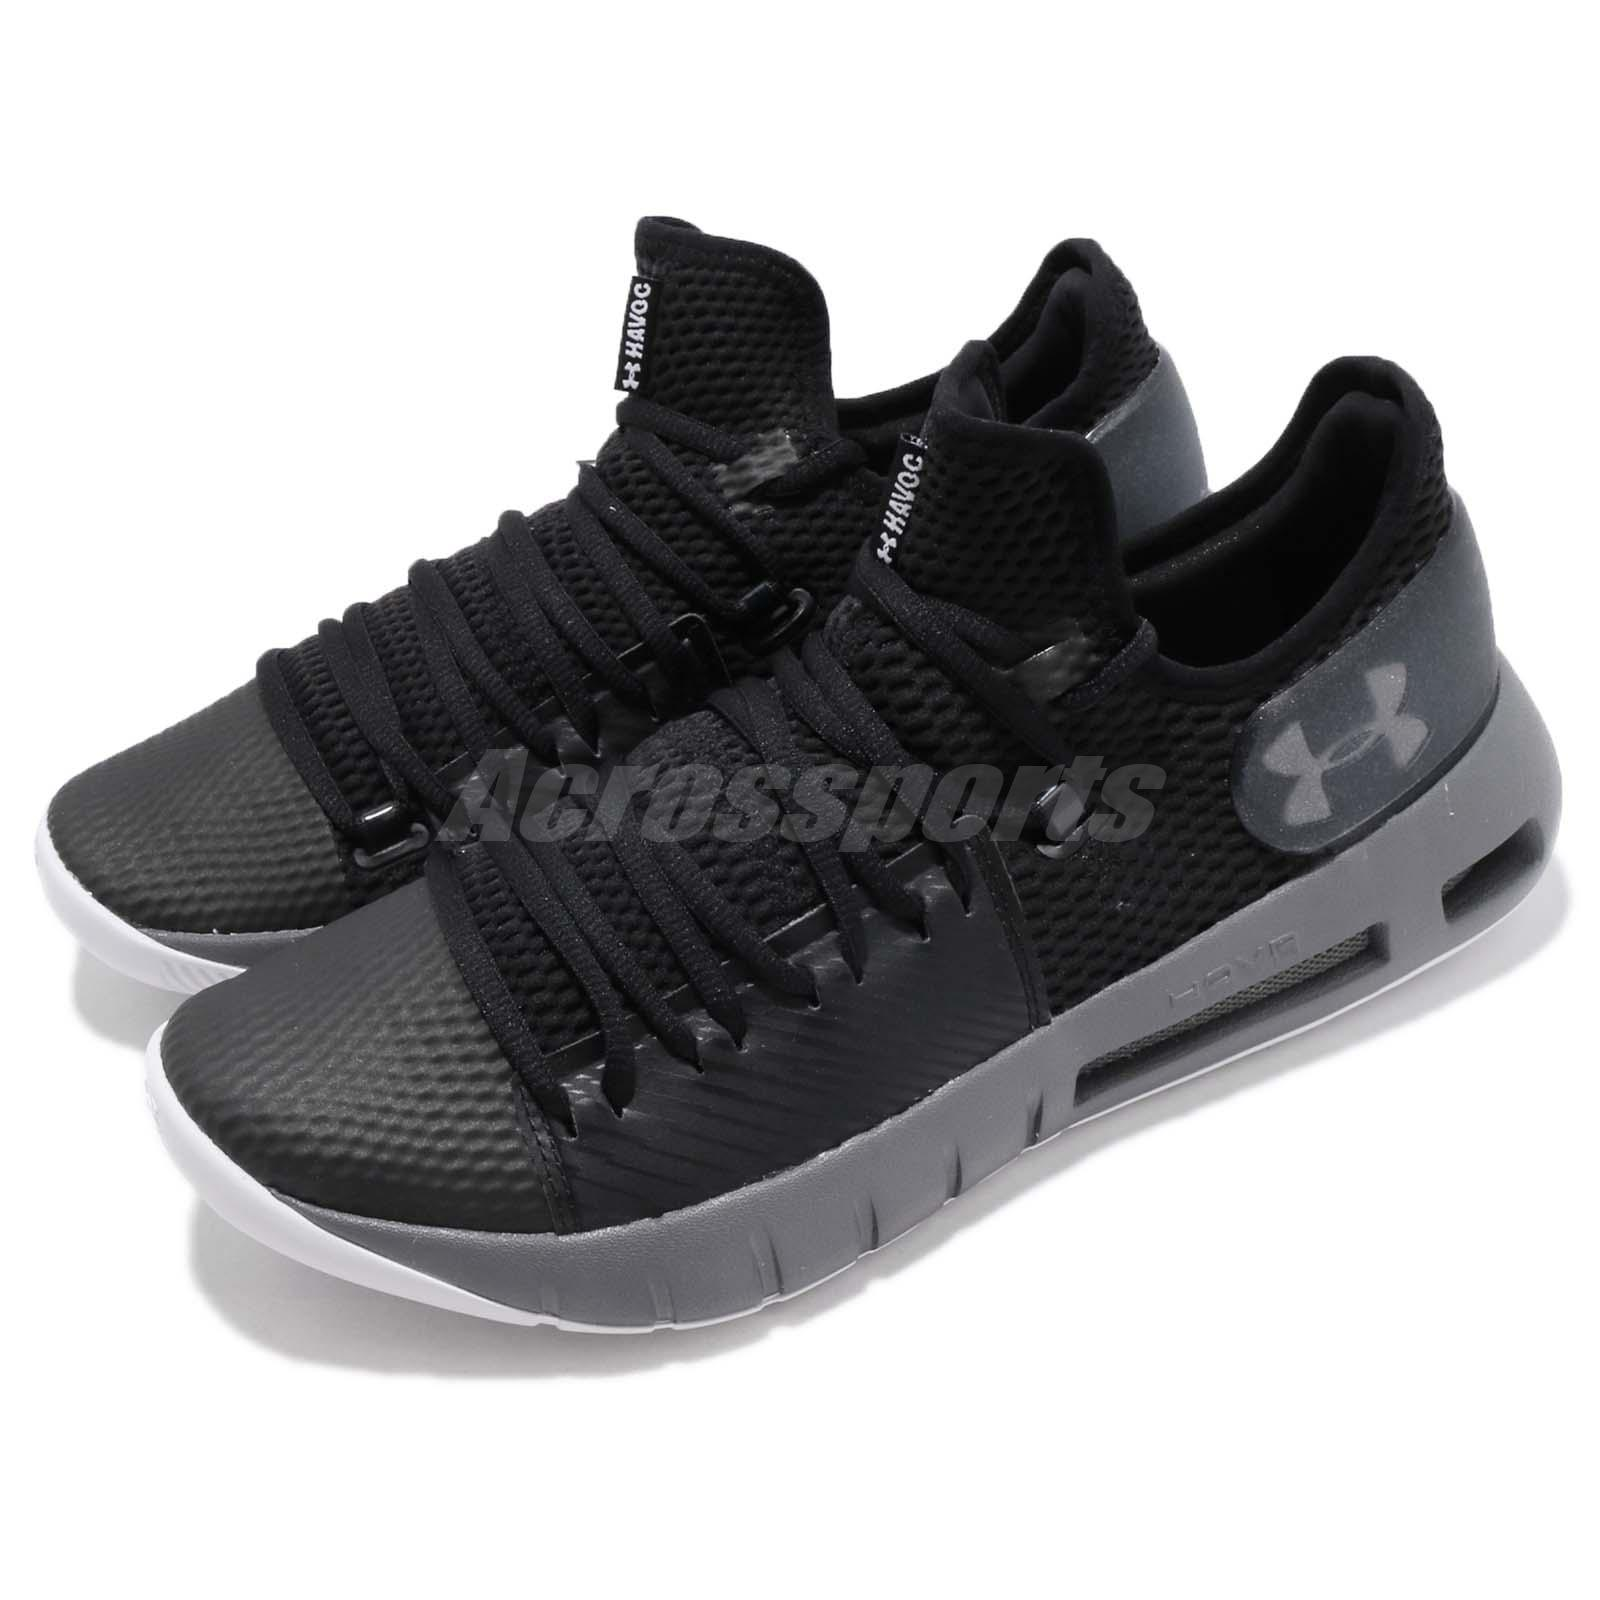 top design 00e4f 55cd3 Details about Under Armour HOVR Havoc Low Black Grey Mens Basketball Shoes  3020618-002